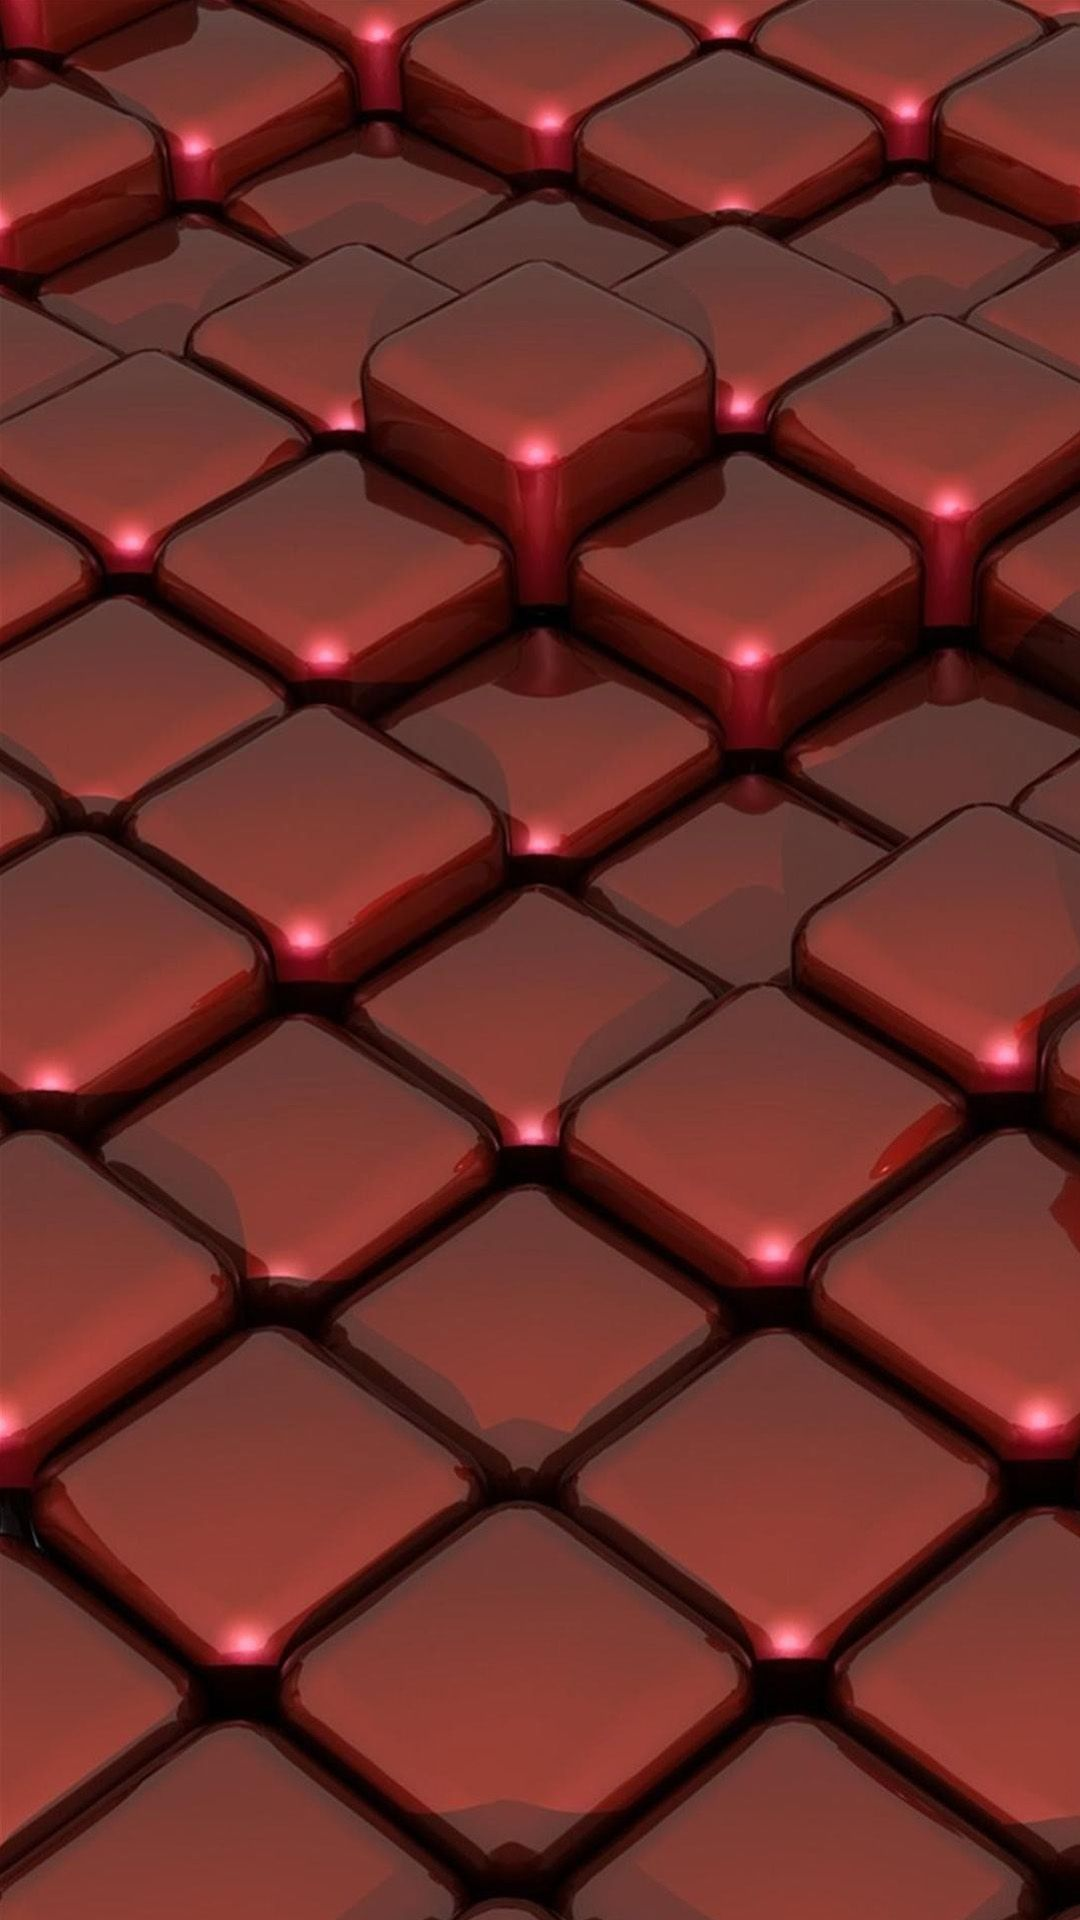 3d galaxy s4 wallpapers hd 105 cell wall pinterest 3d galaxy s4 wallpapers hd 105 voltagebd Choice Image